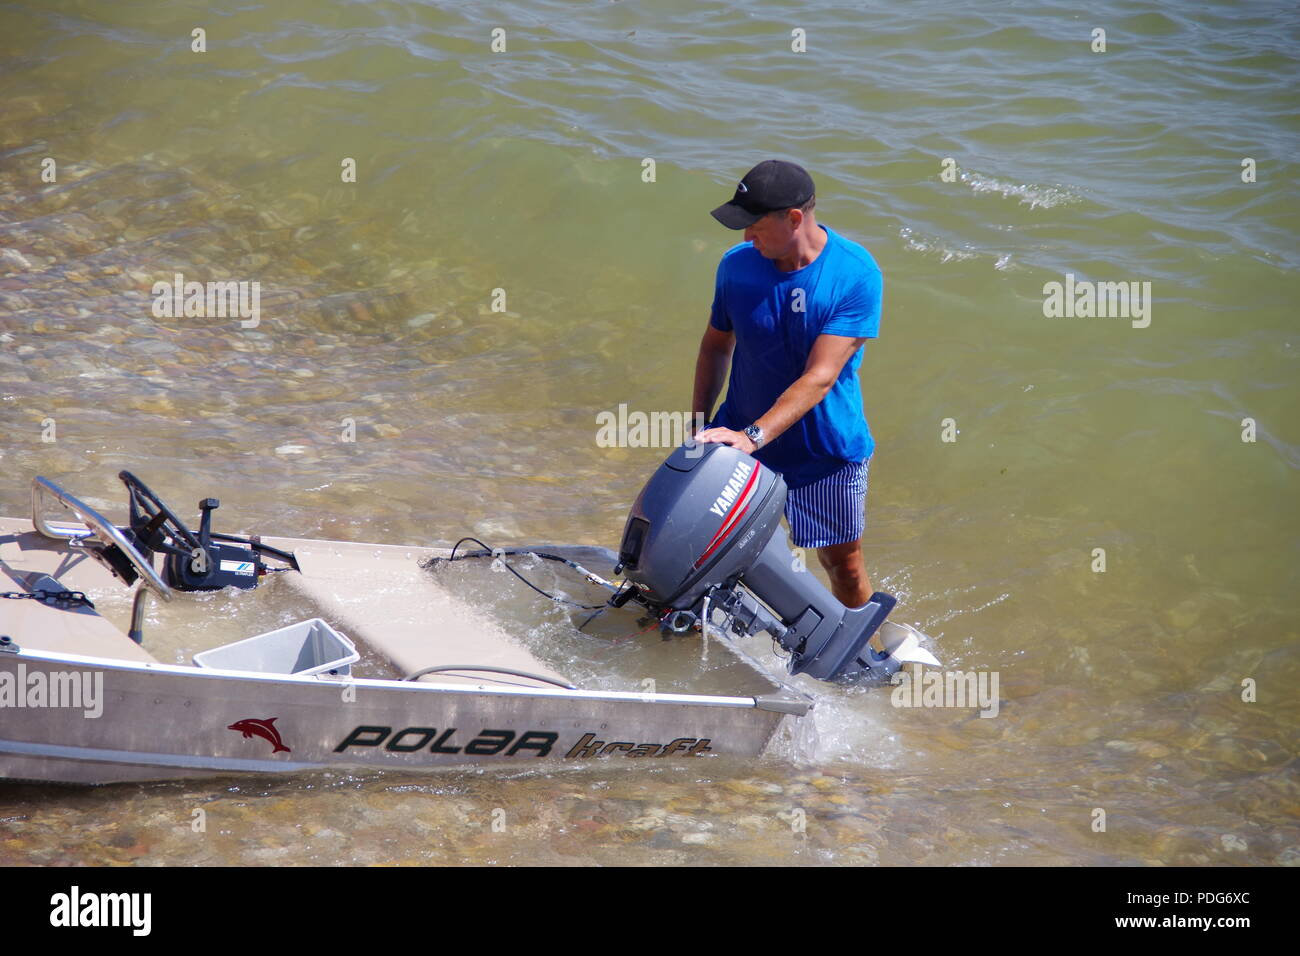 Man with a Partially Flooded Beached Aluminium Boat. Sidmouth beach. East Devon, UK. August, 2018. - Stock Image